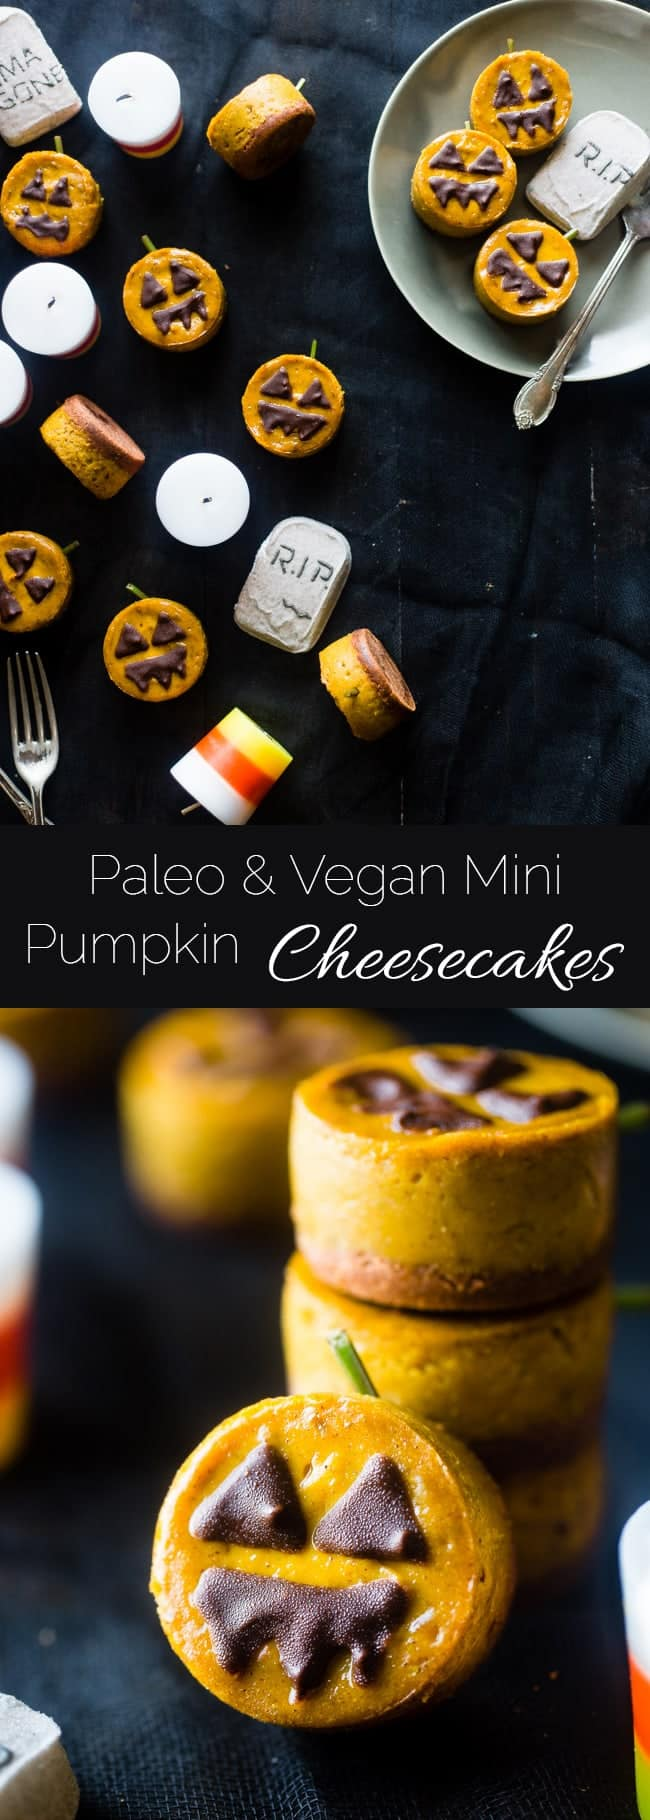 Vegan Mini Pumpkin Jack-O-Lantern Cheesecakes - These pumpkin vegan cheesecakes are easy to make, and are perfect for Halloween! They're healthy, gluten free, paleo friendly and only 200 calories! | Foodfaithfitness.com | @FoodFaithFit